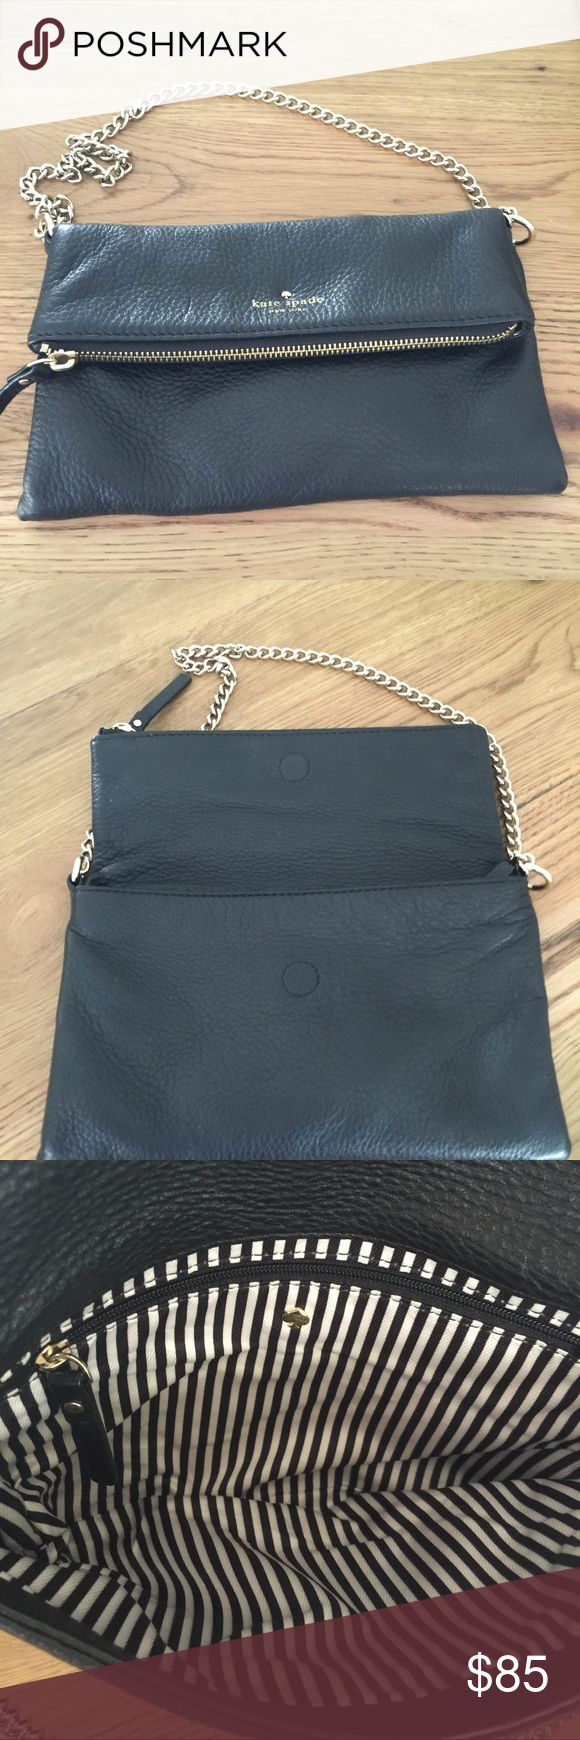 Kate spate handbag black Kate spade handbag.  Black with gold tone chain.  Great condition kate spade Bags Shoulder Bags